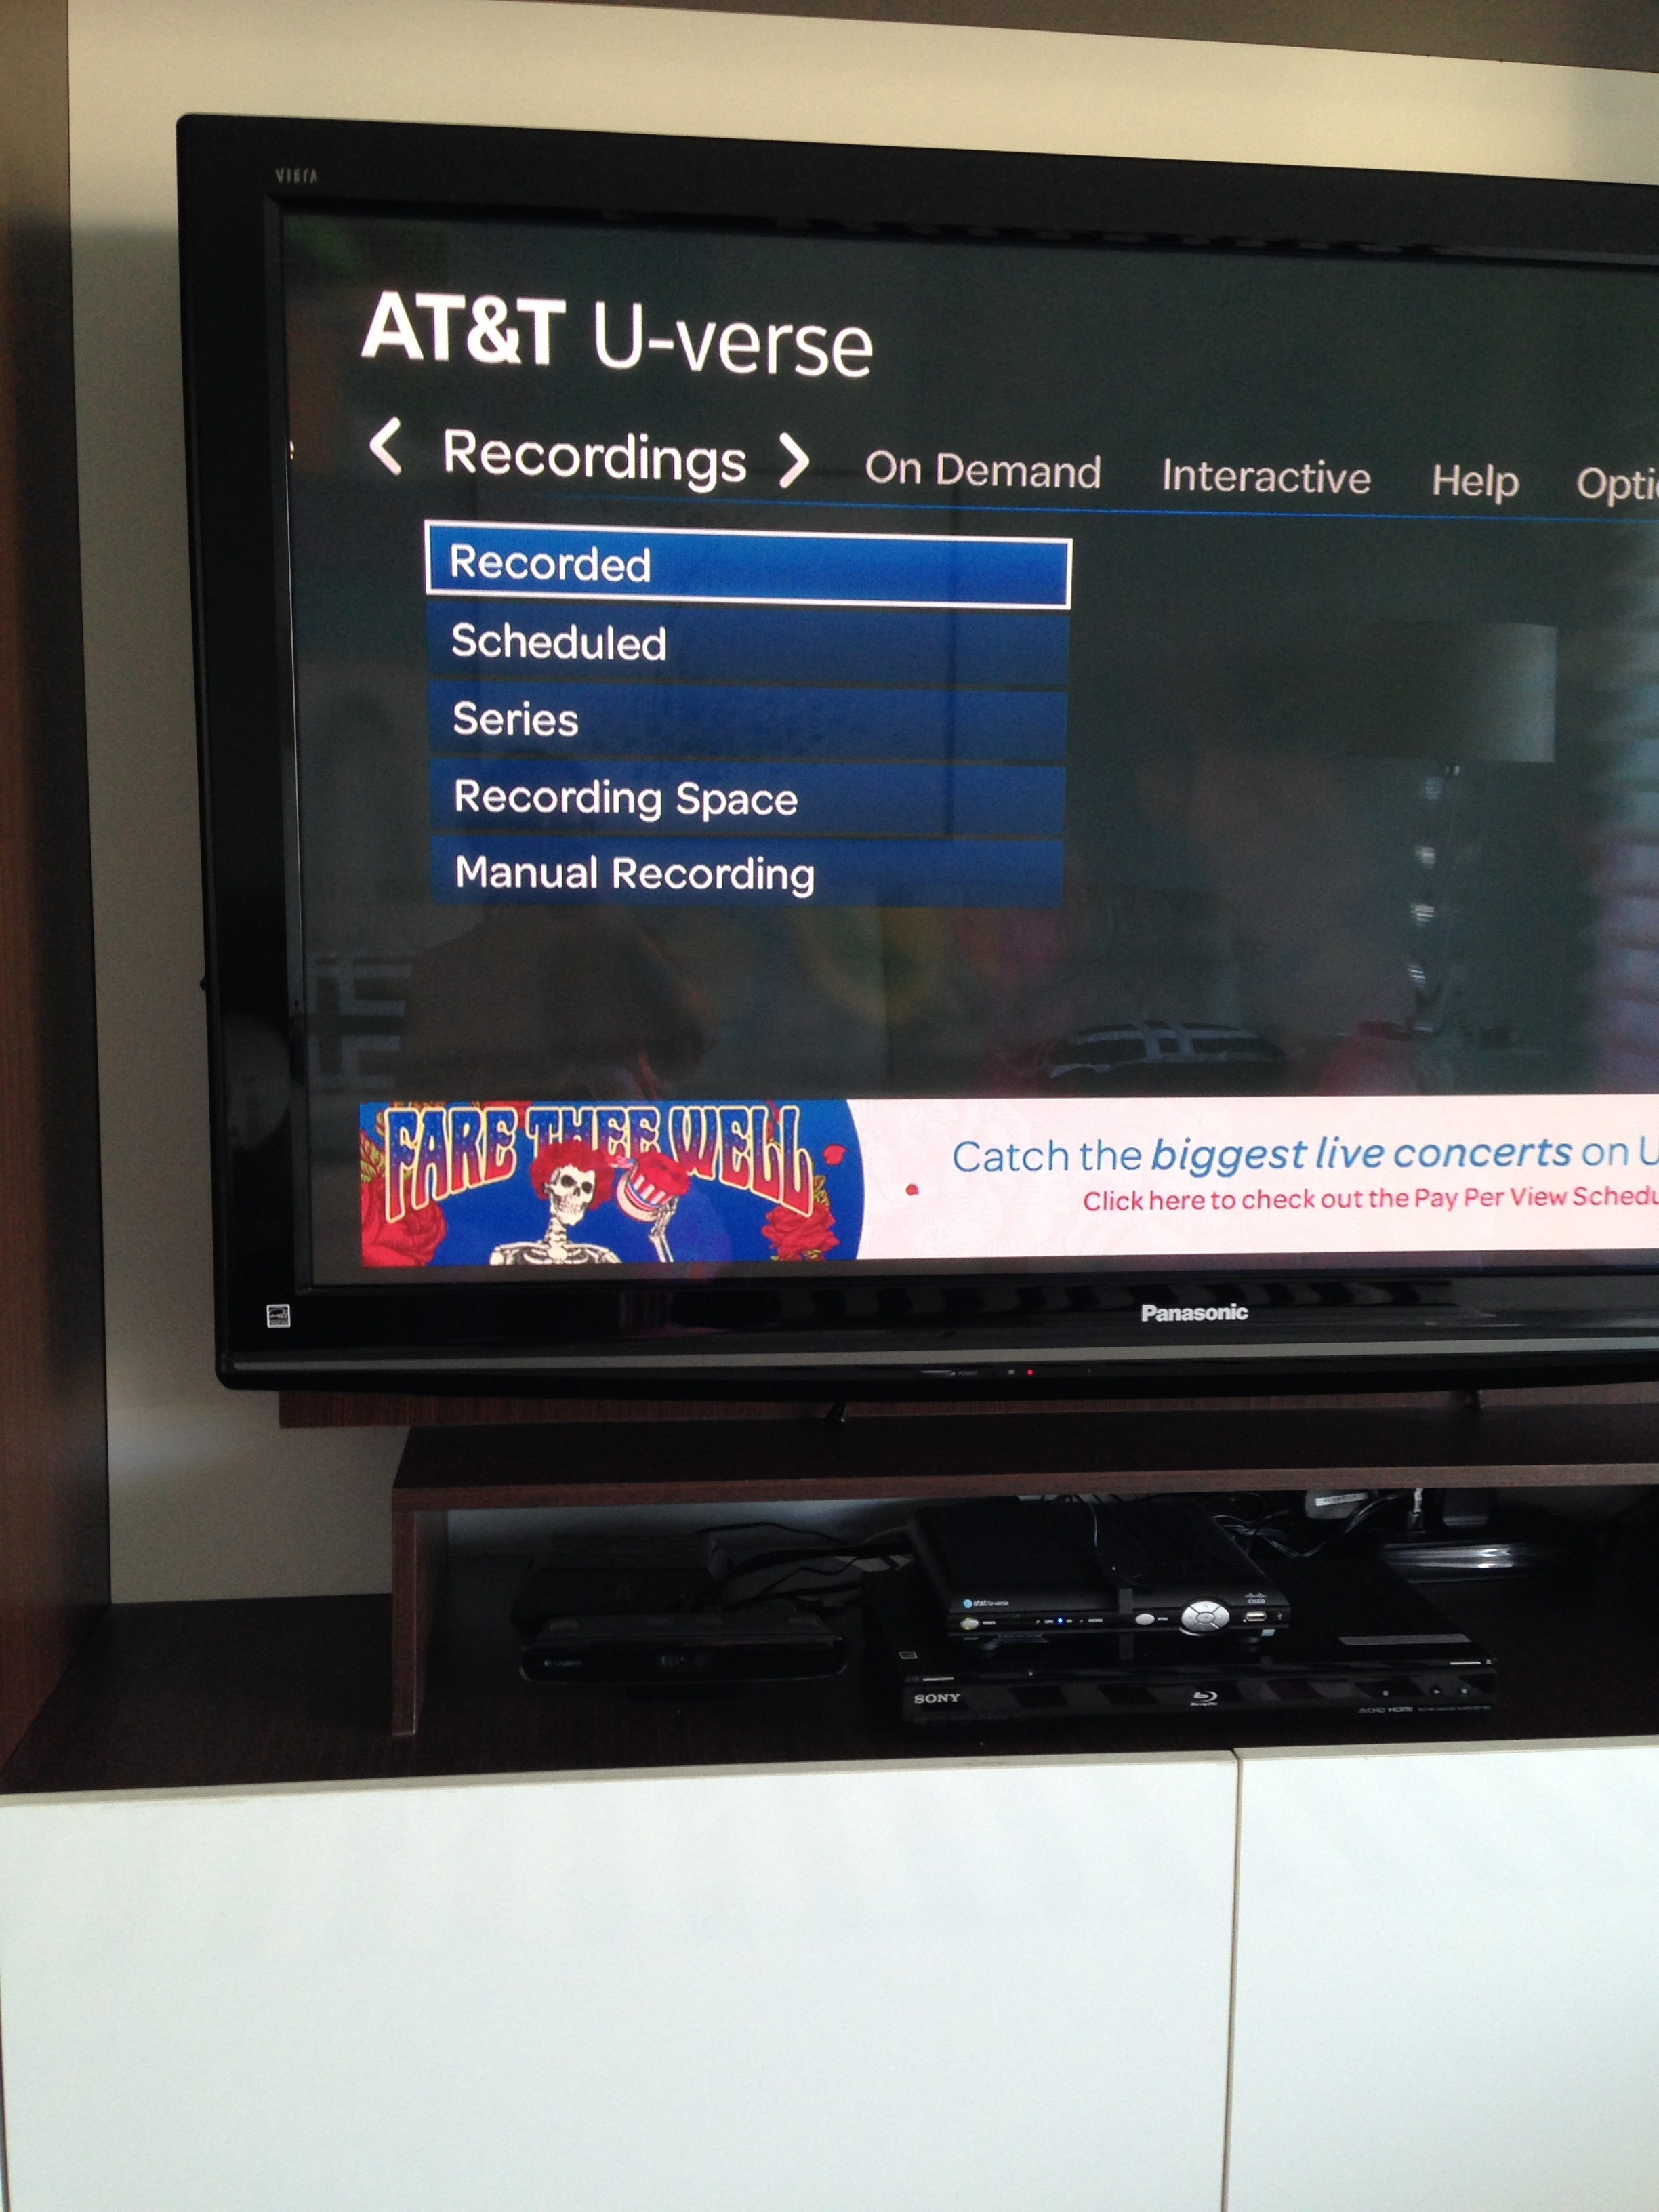 AT&T U-Verse with PVR recording (up to 450 channels, HBO, Showtime, Cinemax. The Movie Channel)